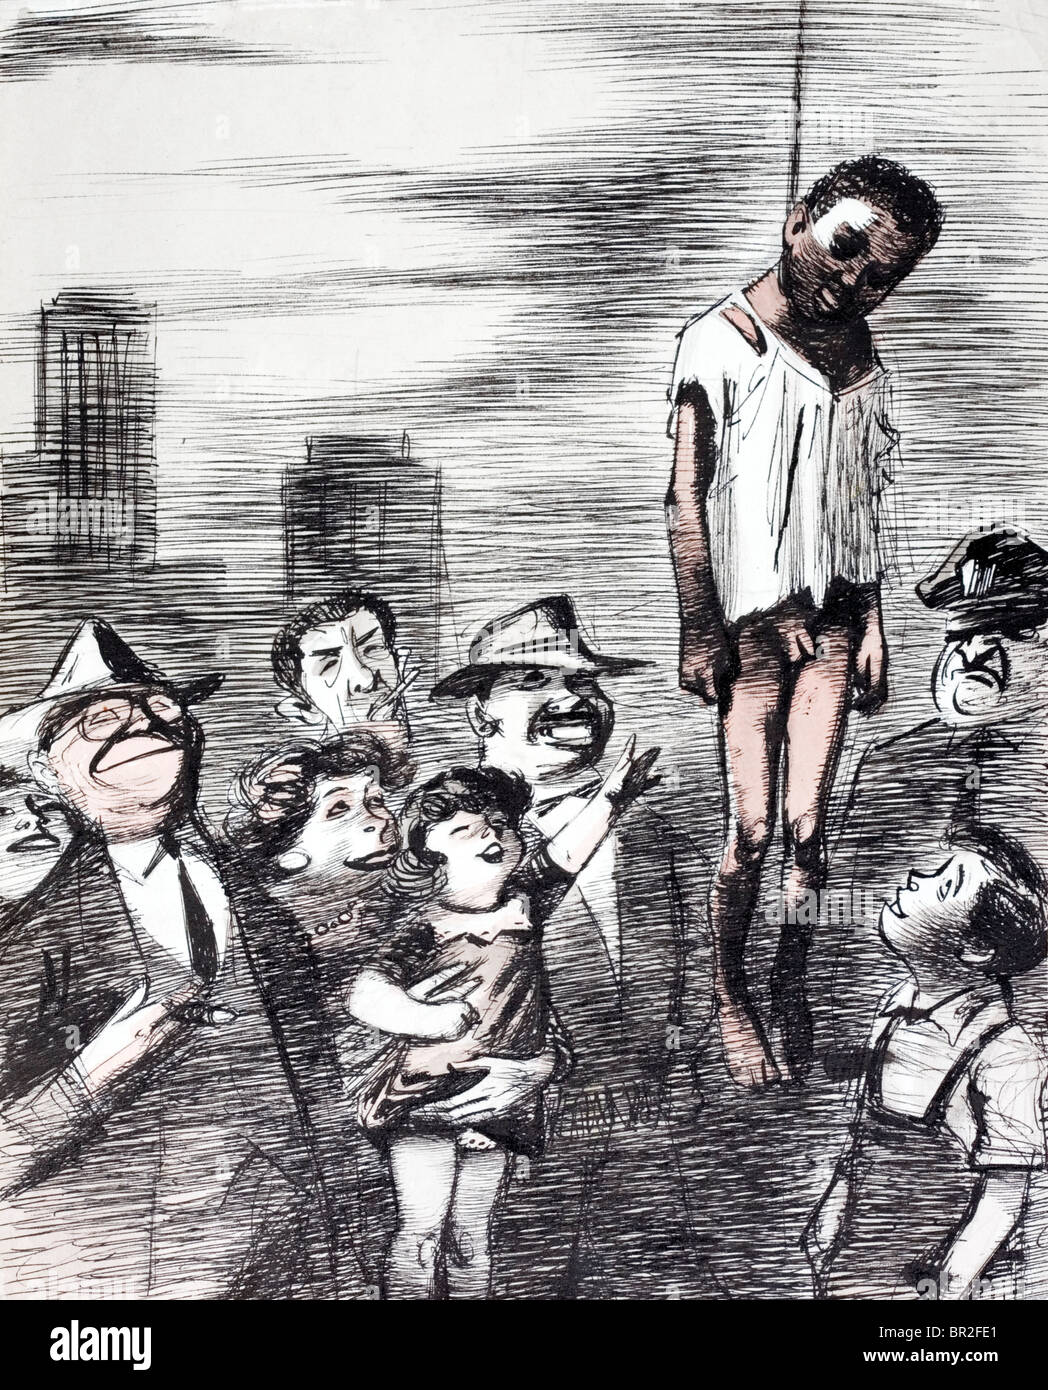 Soviet propaganda cartoon showing a lynching in the United States. - Stock Image